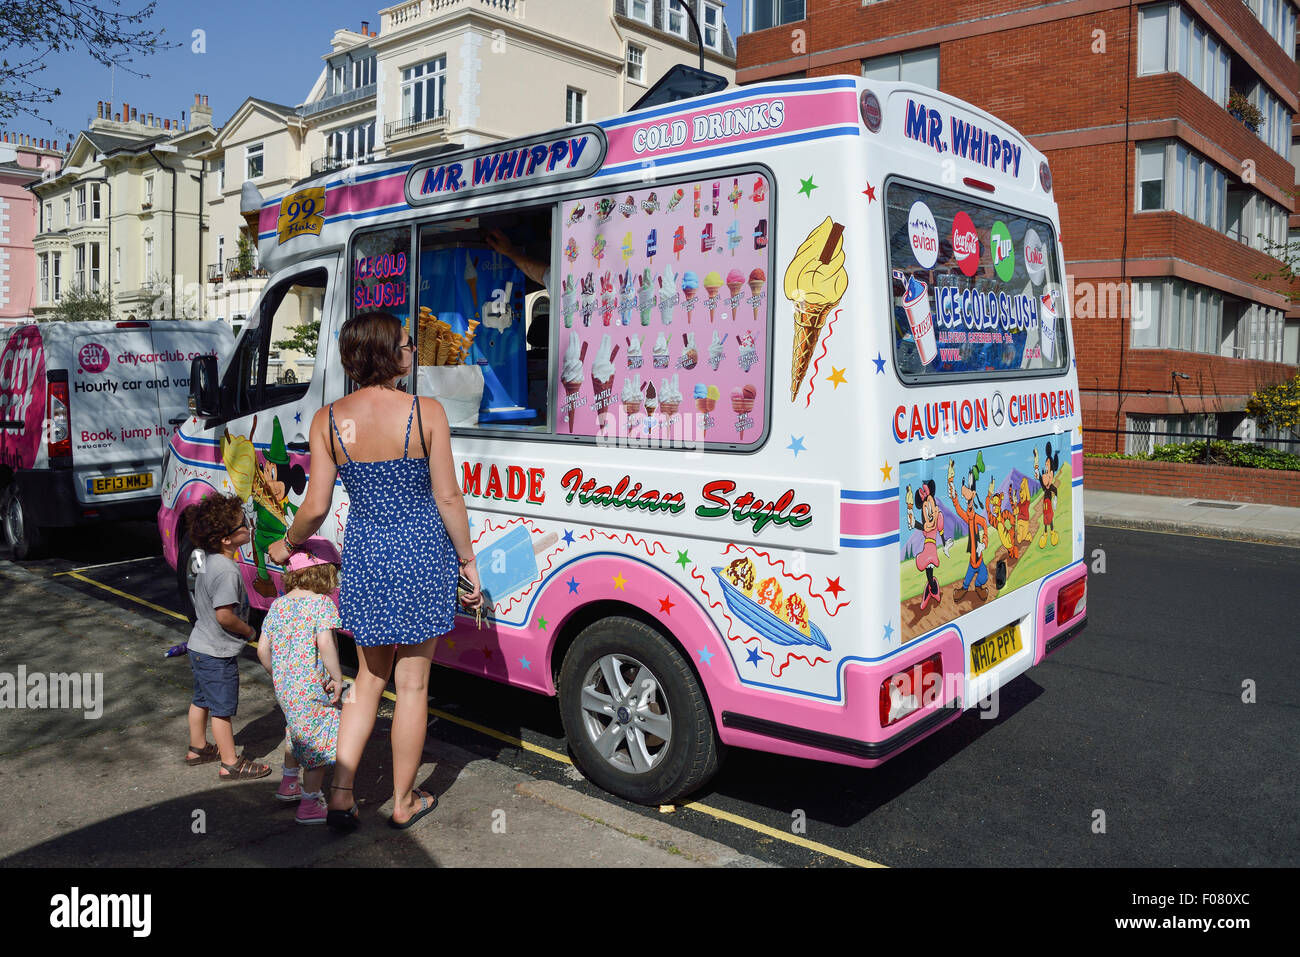 e19ea0dcfc74 Mr Whippy Ice Cream Van Stock Photos   Mr Whippy Ice Cream Van Stock ...